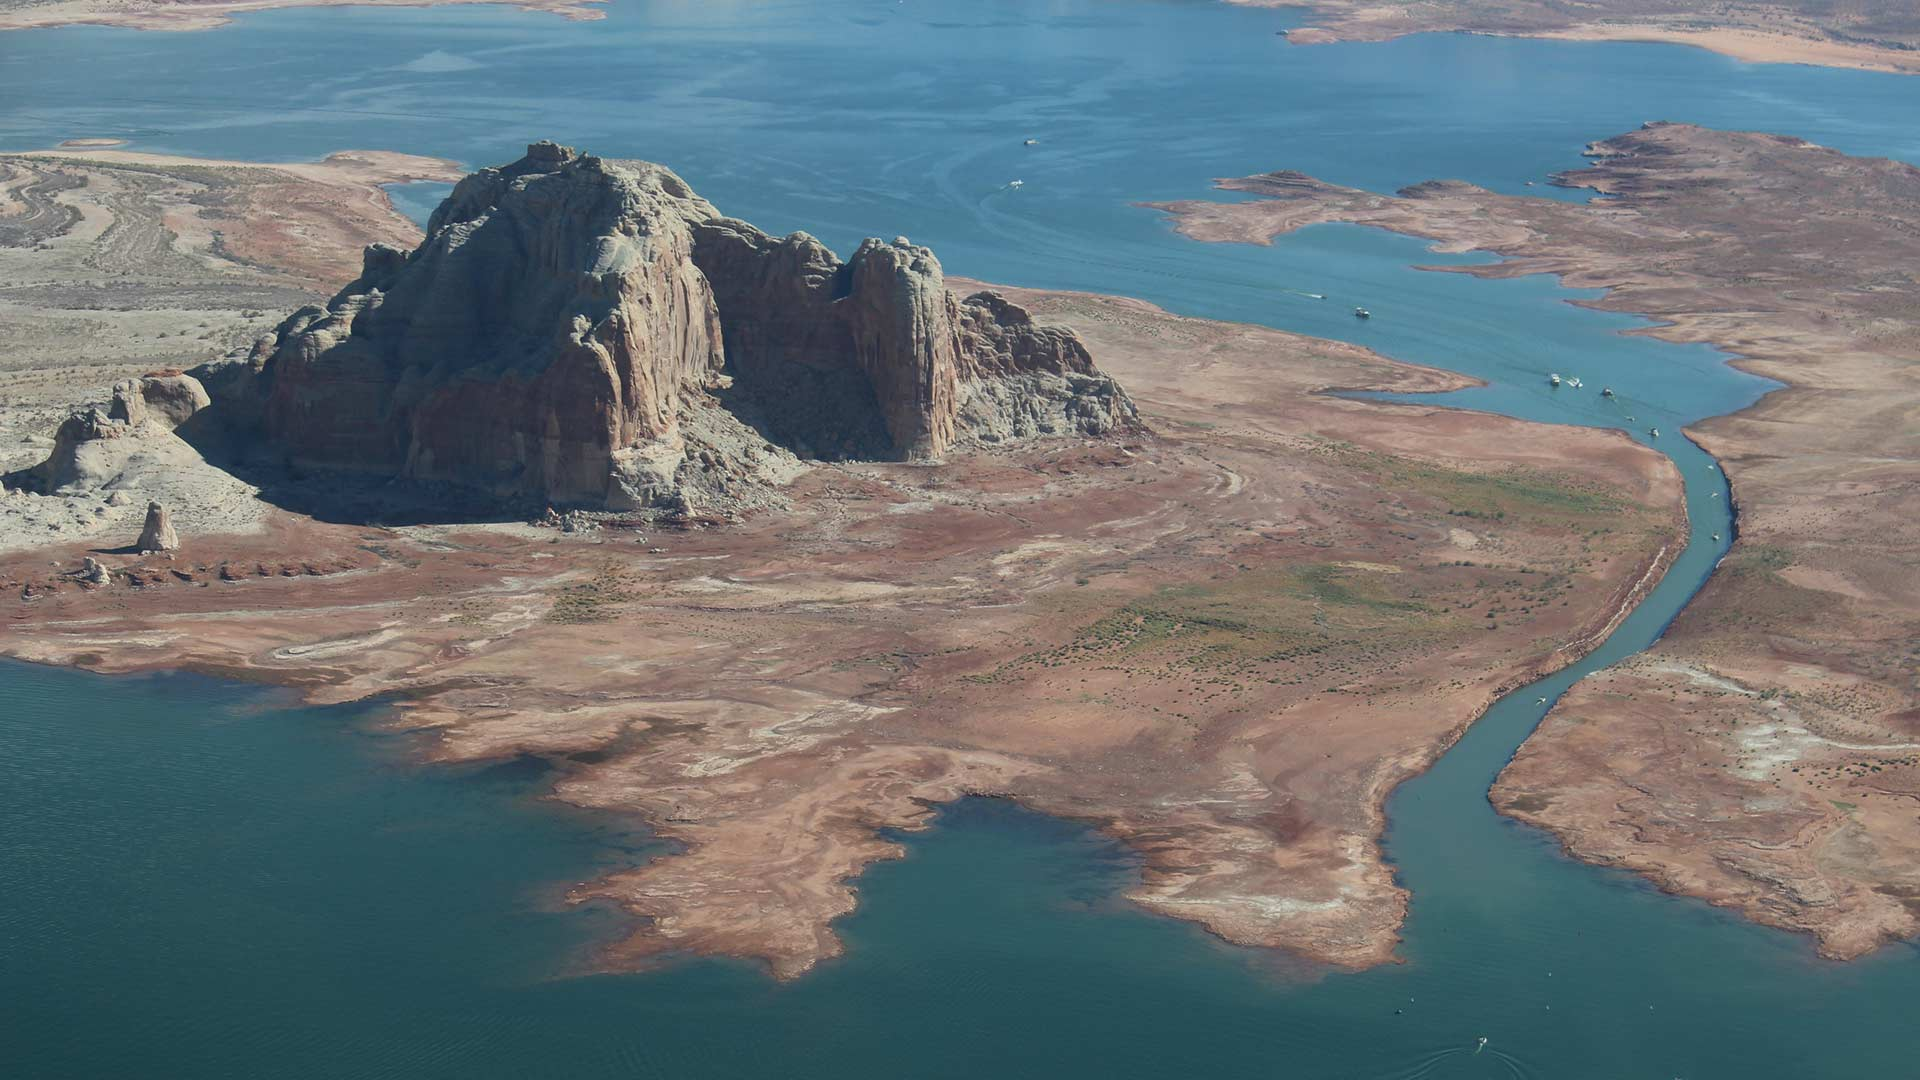 Lake Powell on the Utah-Arizona border continues to drop as snowpack declines throughout the southwestern U.S. The narrow passageway shown here in September 2018 has been rendered unusable as water levels drop.